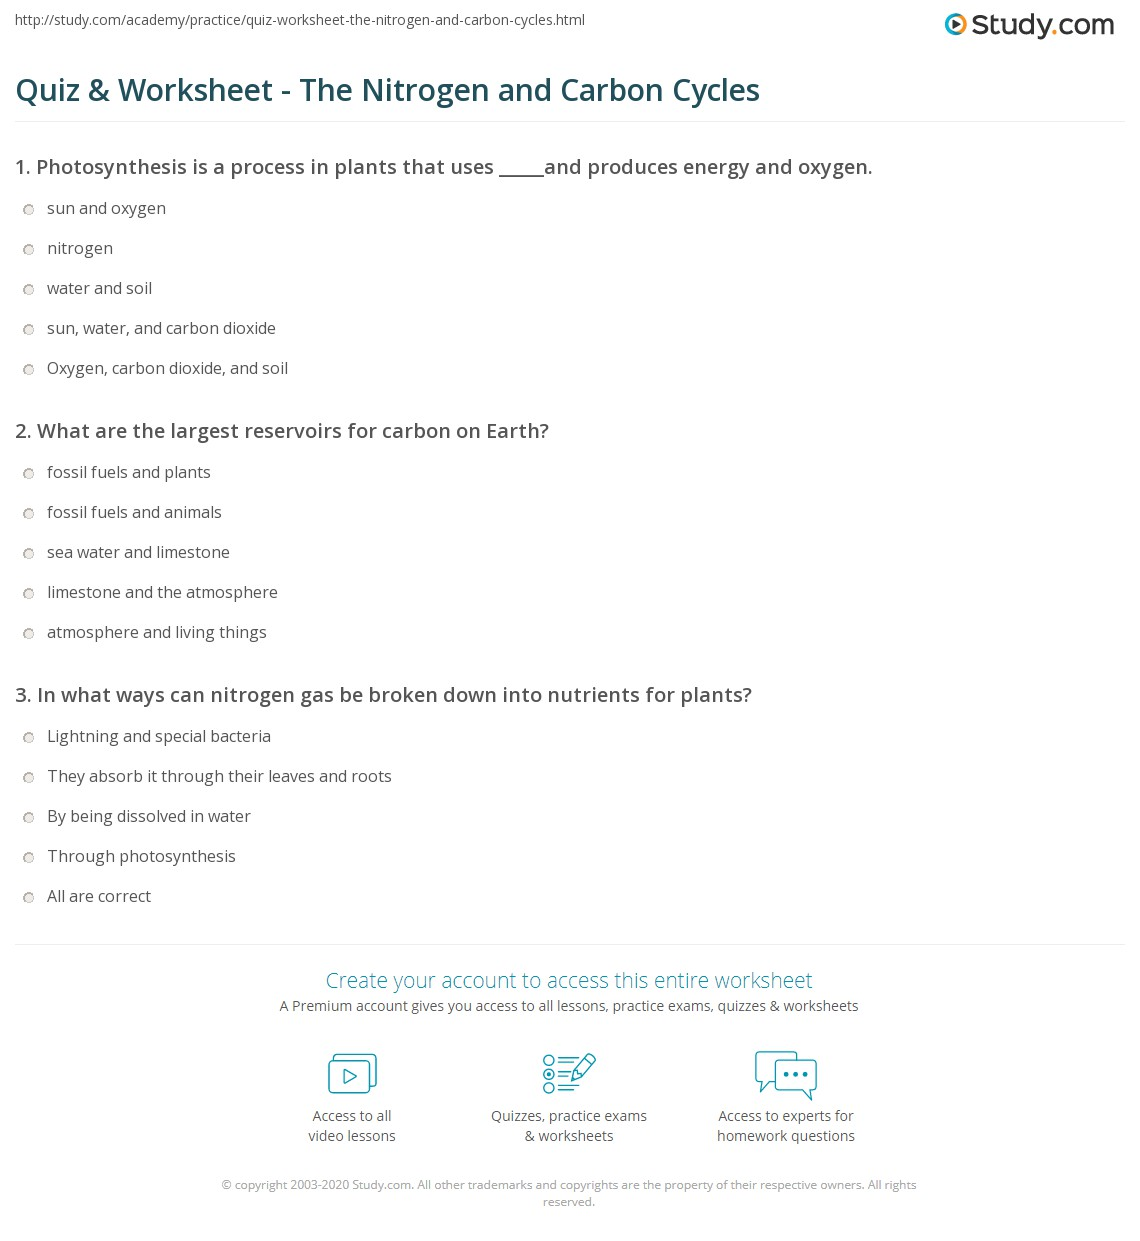 the nitrogen cycle worksheet answers delibertad quiz worksheet the nitrogen and carbon cycles study com